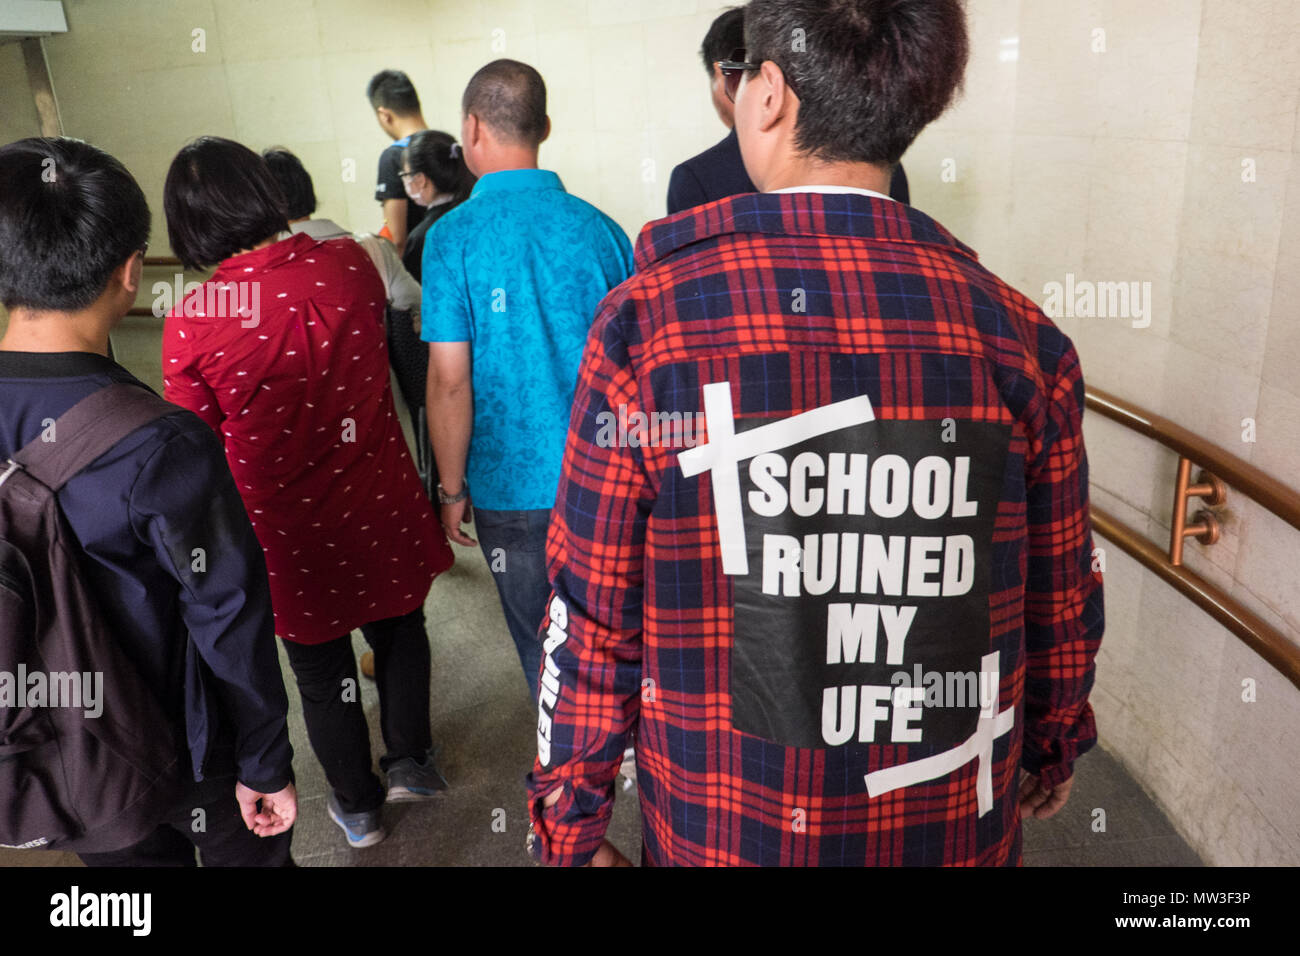 64466b9c Funny,poor,English,tee,shirt,clothing,spelling,mistake,humour,humor,Beijing,Peking,capital,city,Peoples  Republic of China,China,Chinese,Asia,Asian,